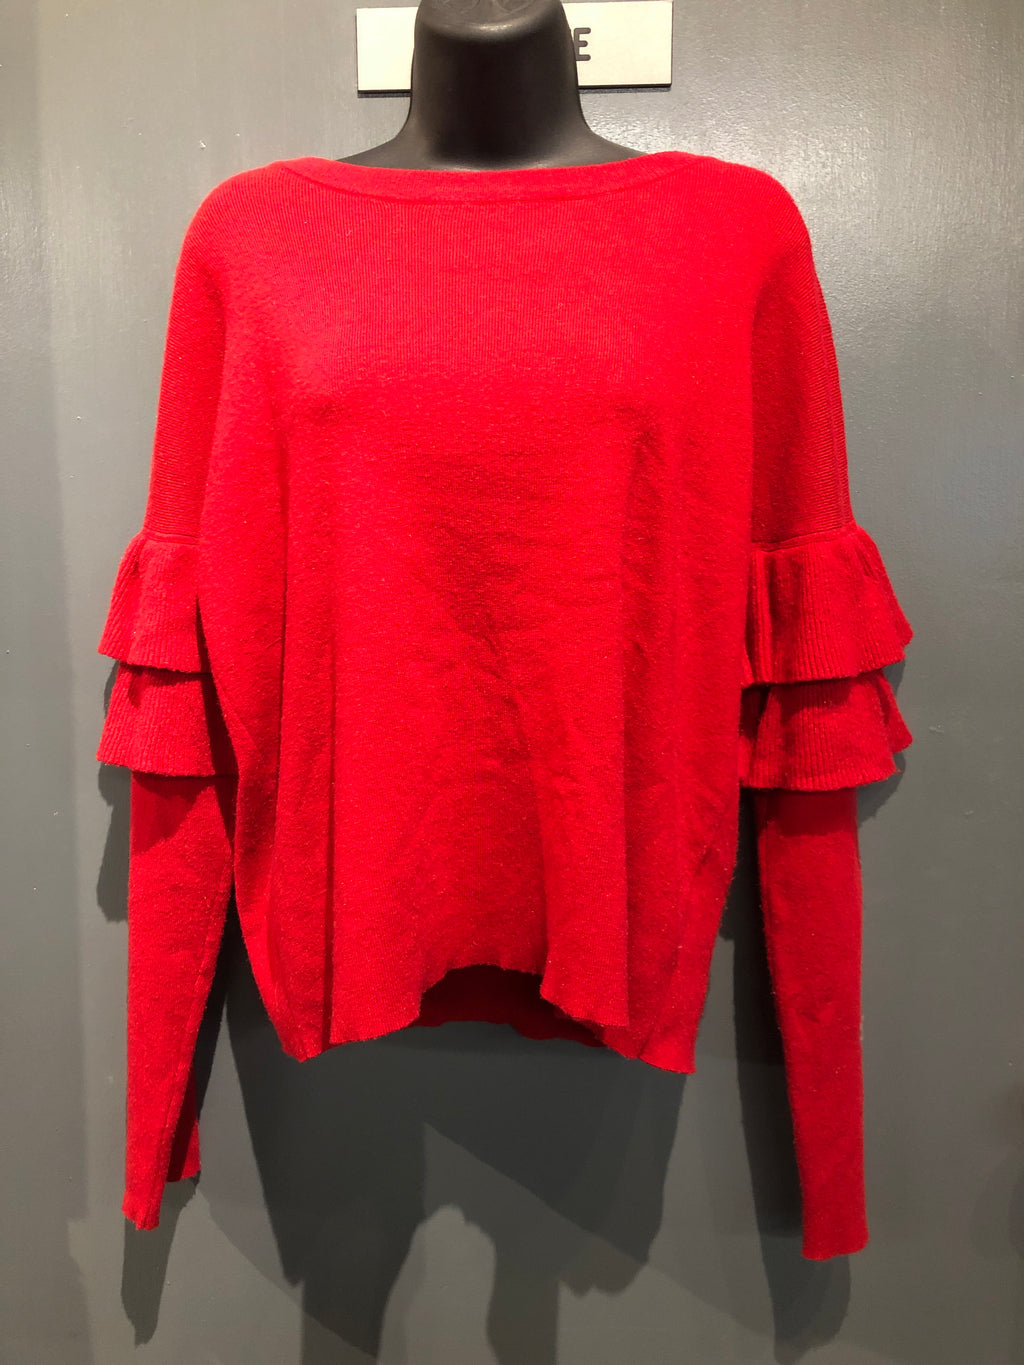 Red ruffle sleeve sweater size small